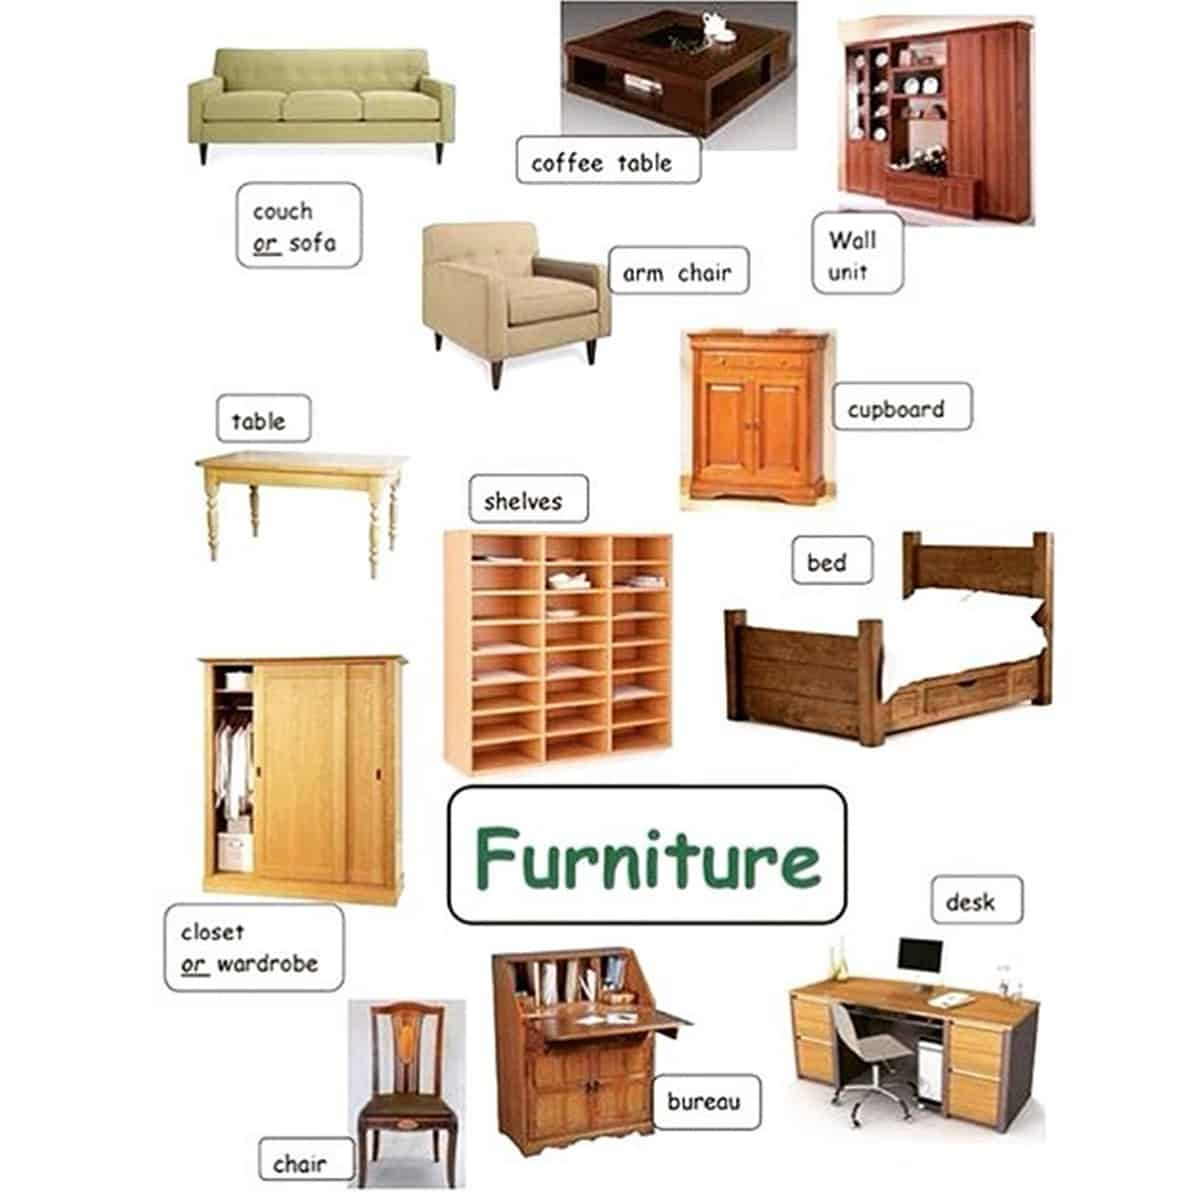 Furniture Vocabulary: 250+ Items Illustrated 19